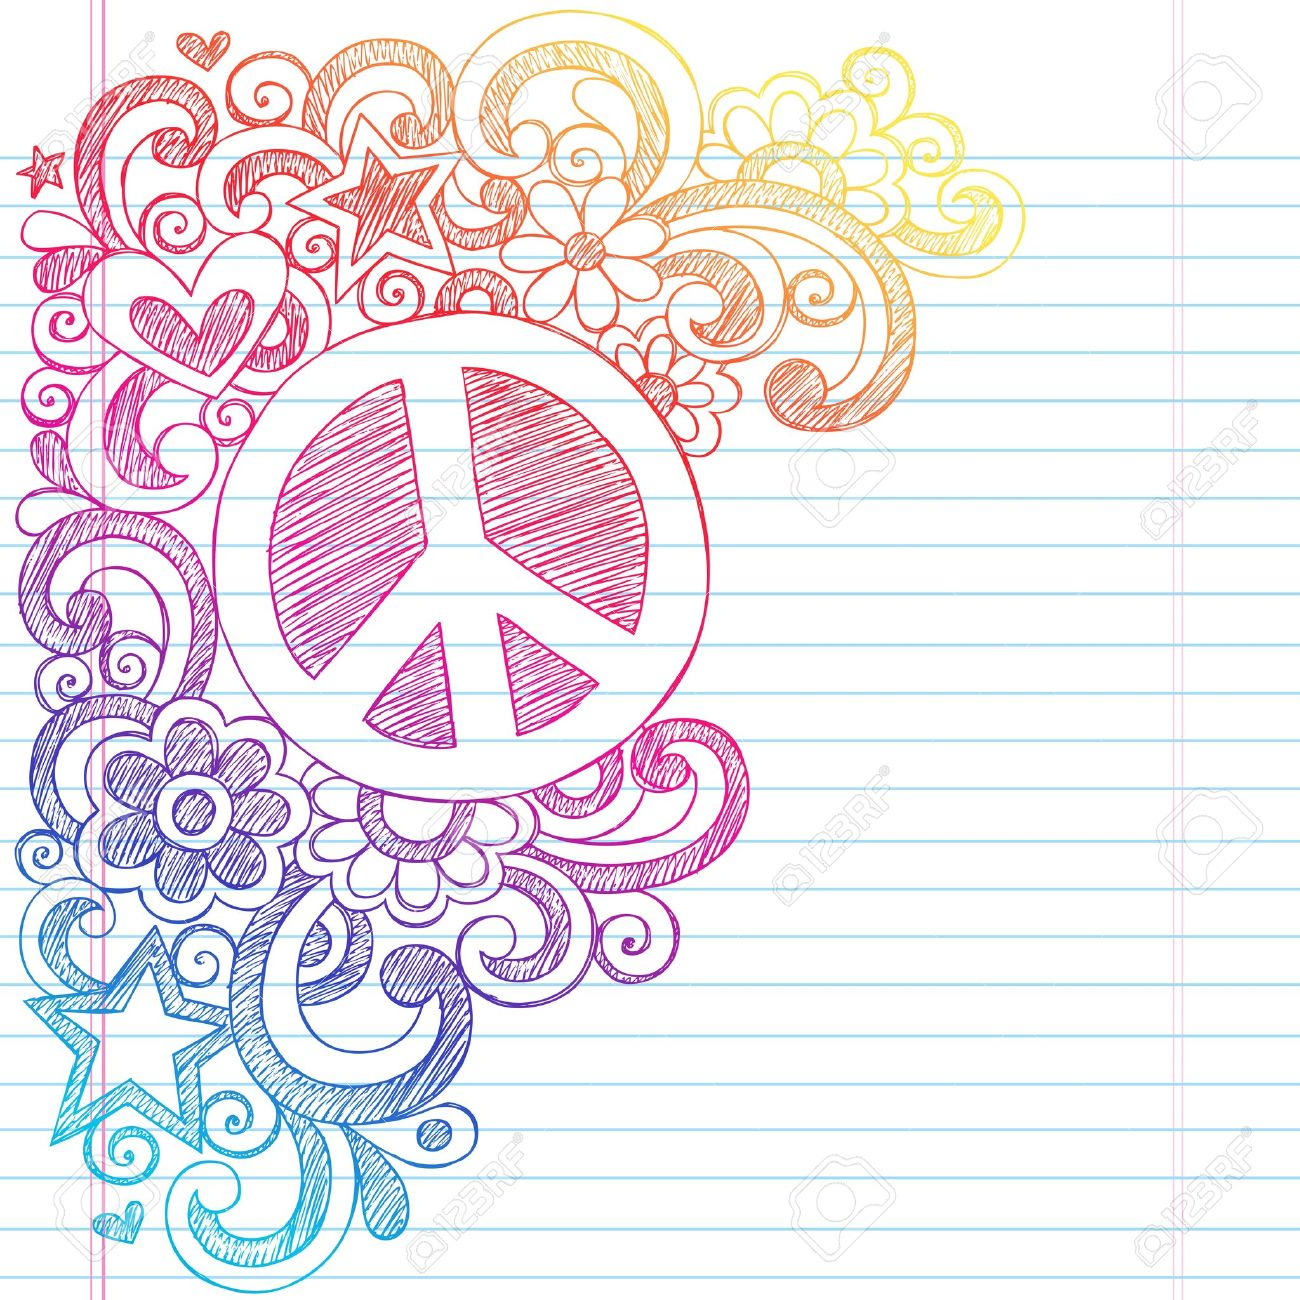 Peace Sign and Love Psychedelic Back to School Sketchy Notebook Doodles- Illustration Design on Lined Sketchbook Paper Background Stock Vector - 18705028